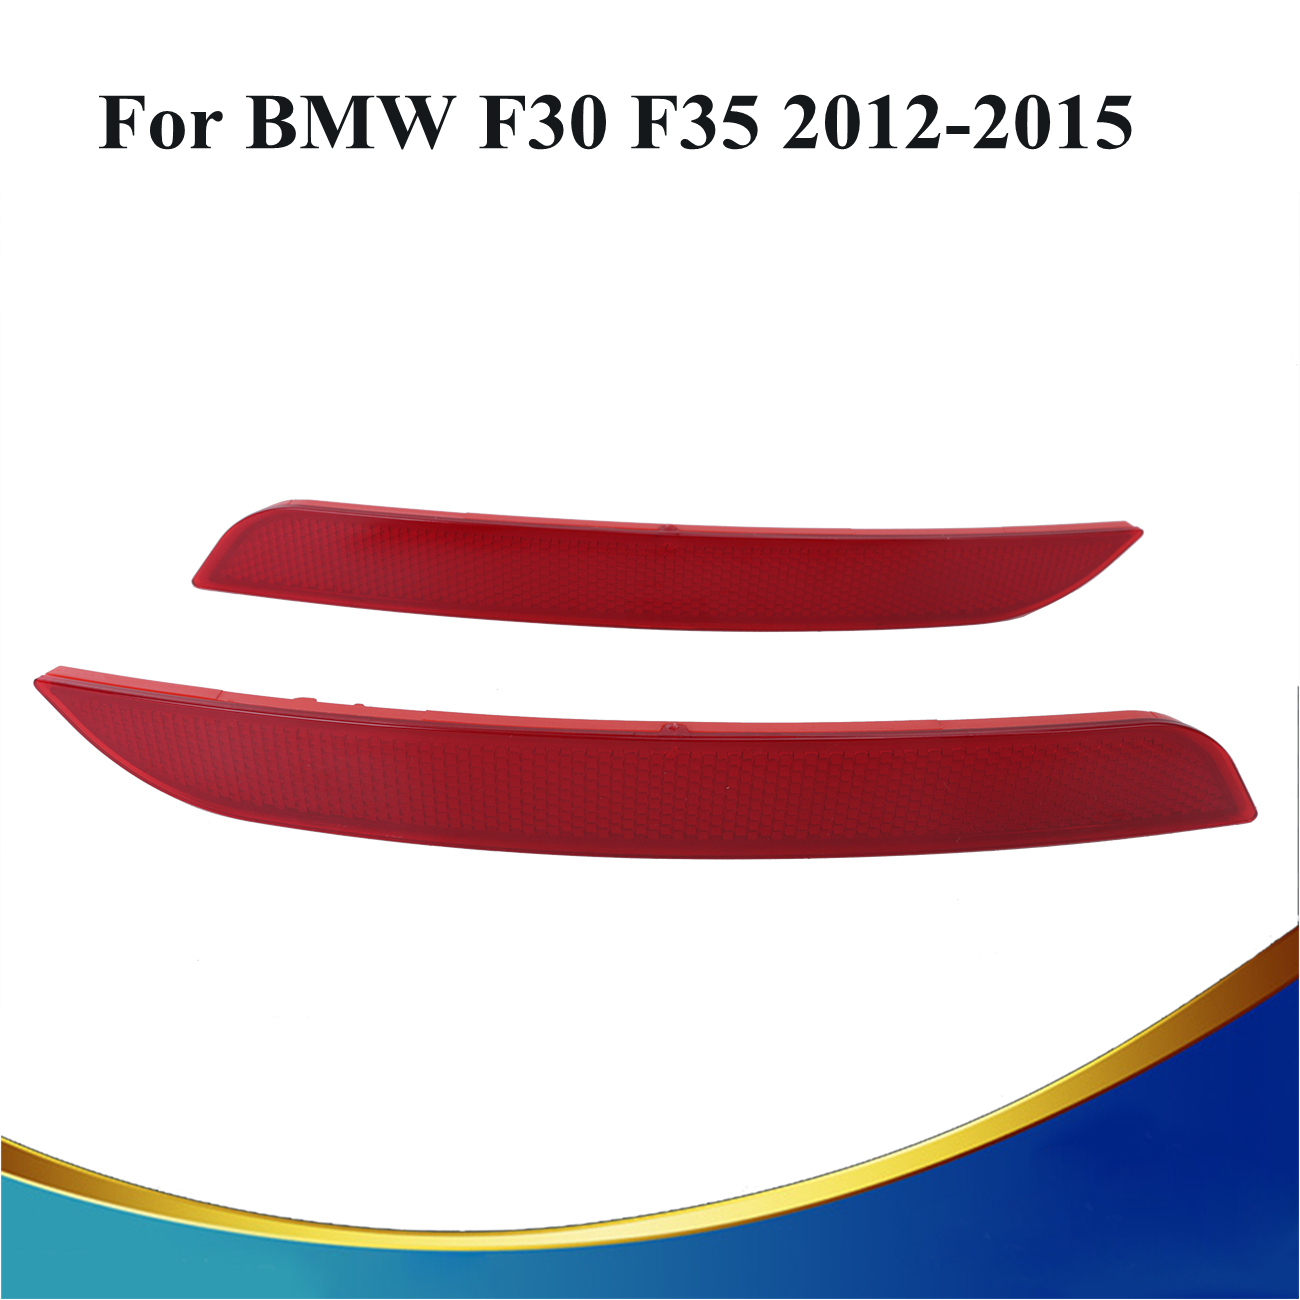 2x Red Red Lens Rear Bumper Reflector Warning Light For BMW F30 F35 328i 320i 335i Auto Car Styling #3099